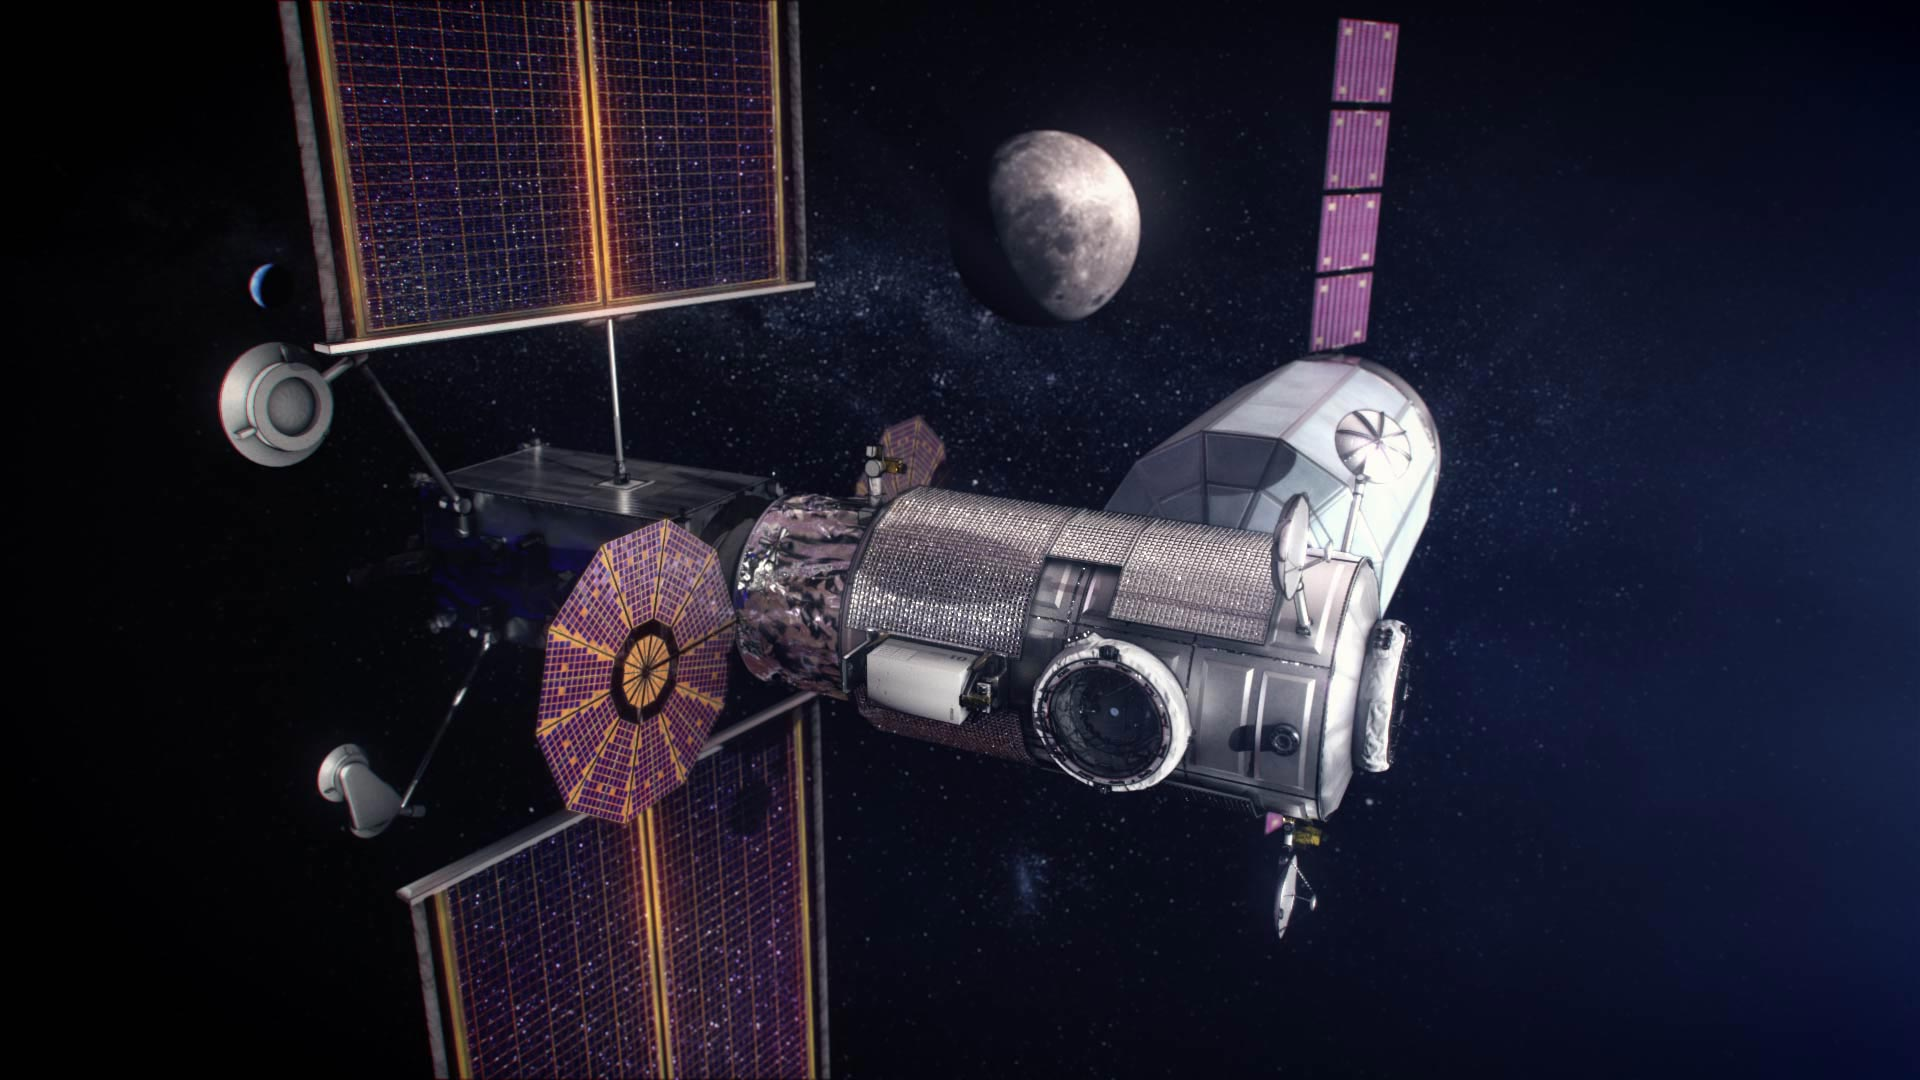 NASA chooses 2 investigations for the Moon mission